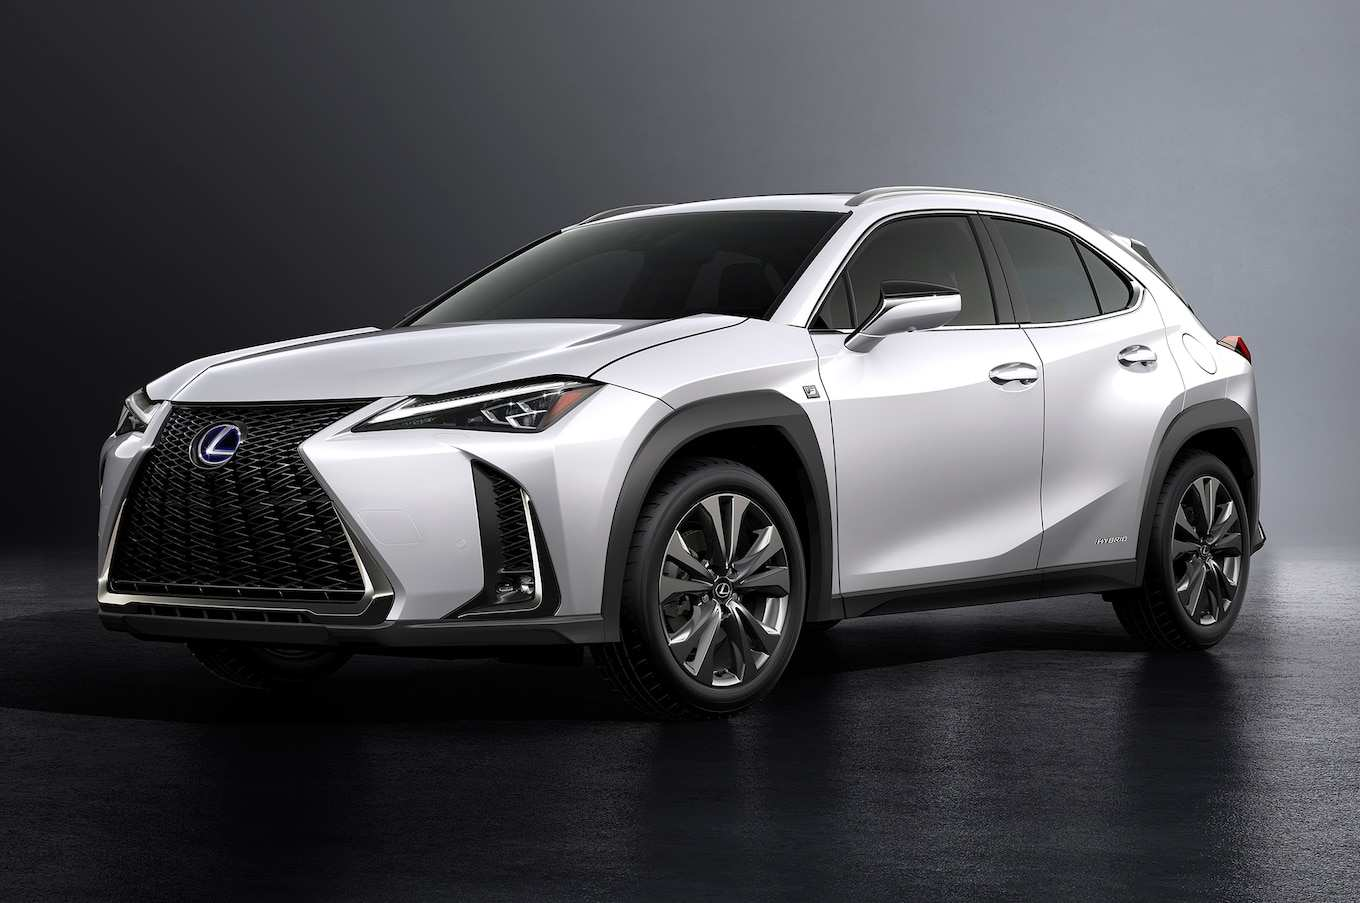 83 Gallery of Best 2019 Lexus Lineup Redesign And Price Reviews for Best 2019 Lexus Lineup Redesign And Price